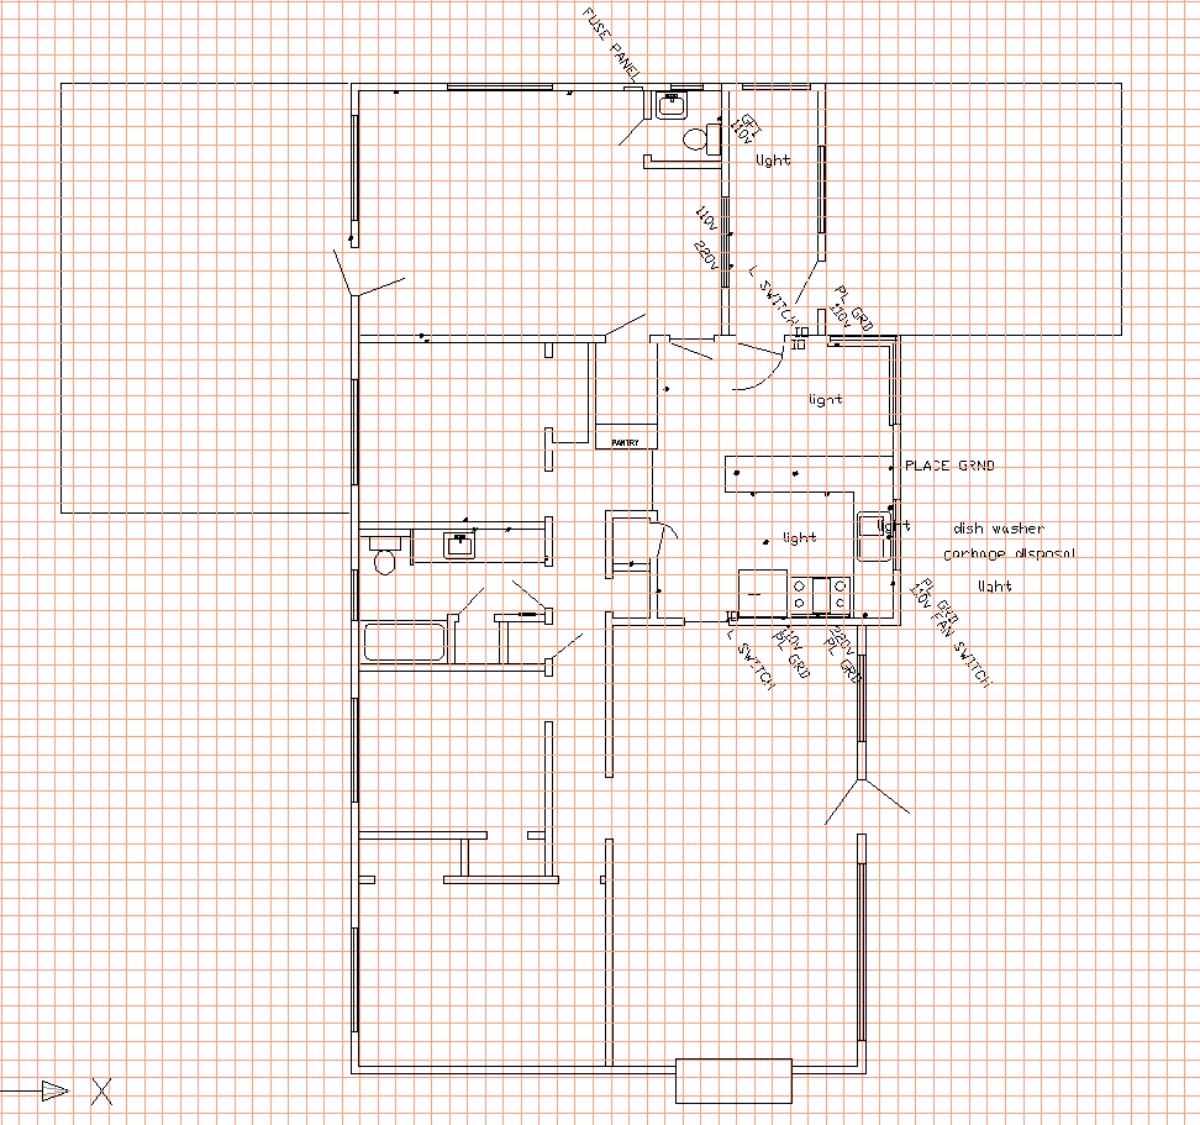 Home interior perfly autocad home design drawings Autocad house drawings